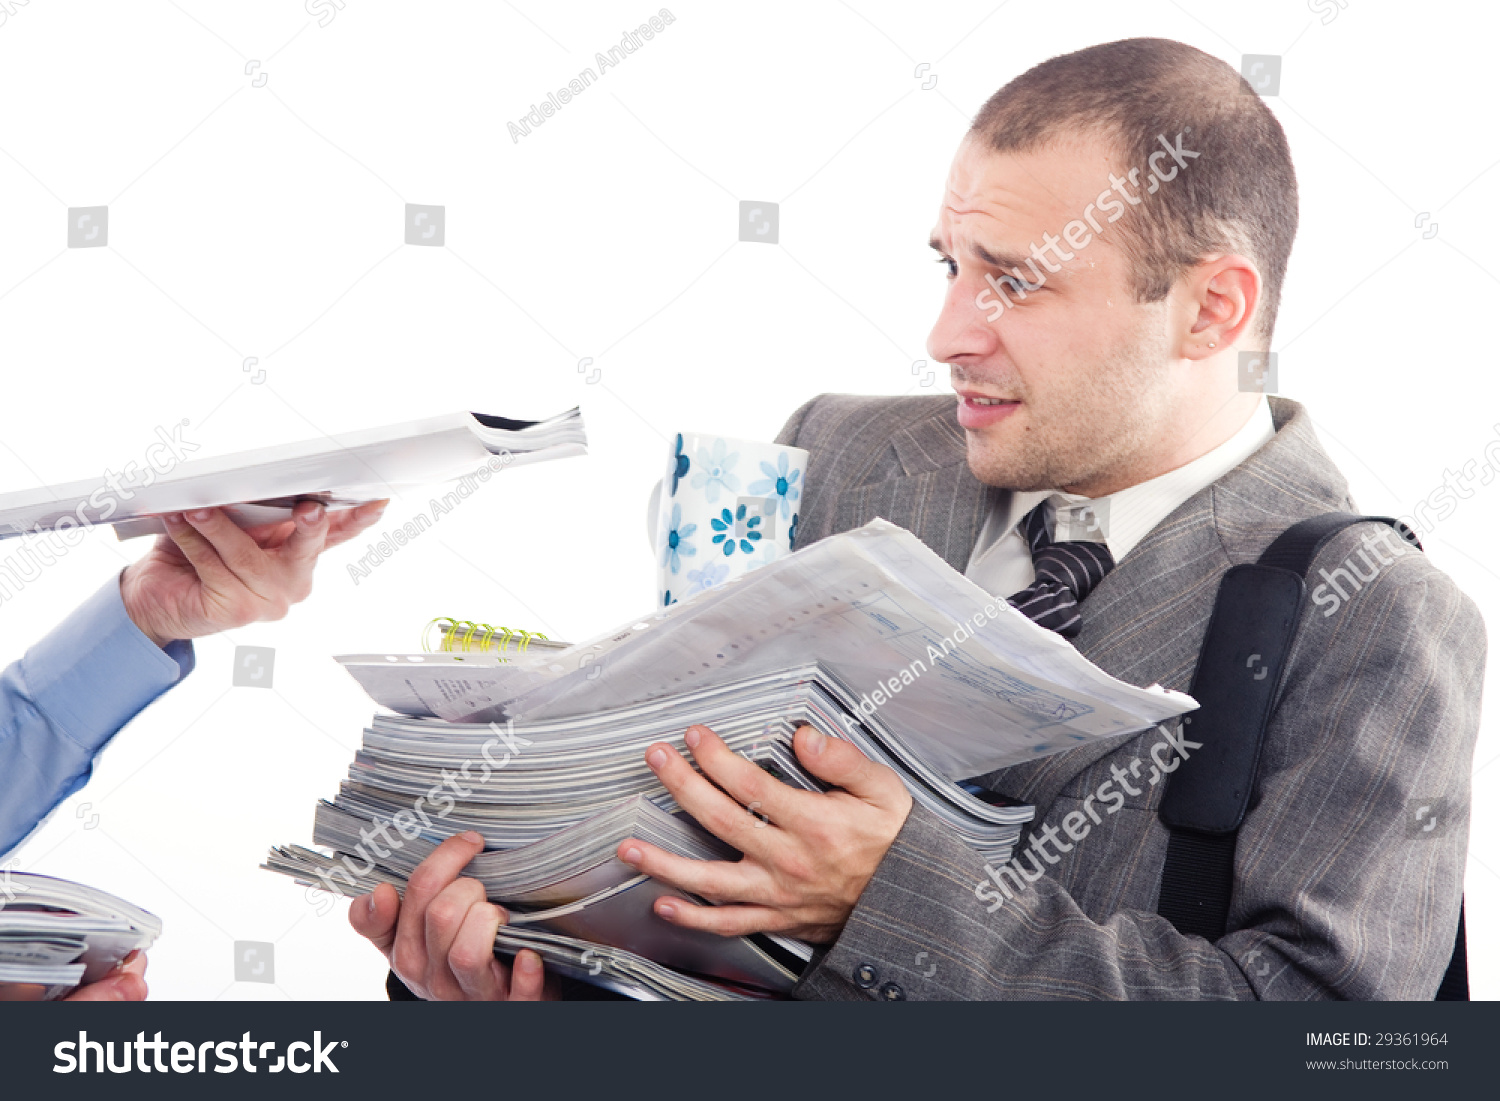 exhausted businessman much work do stock photo shutterstock exhausted businessman too much work to do